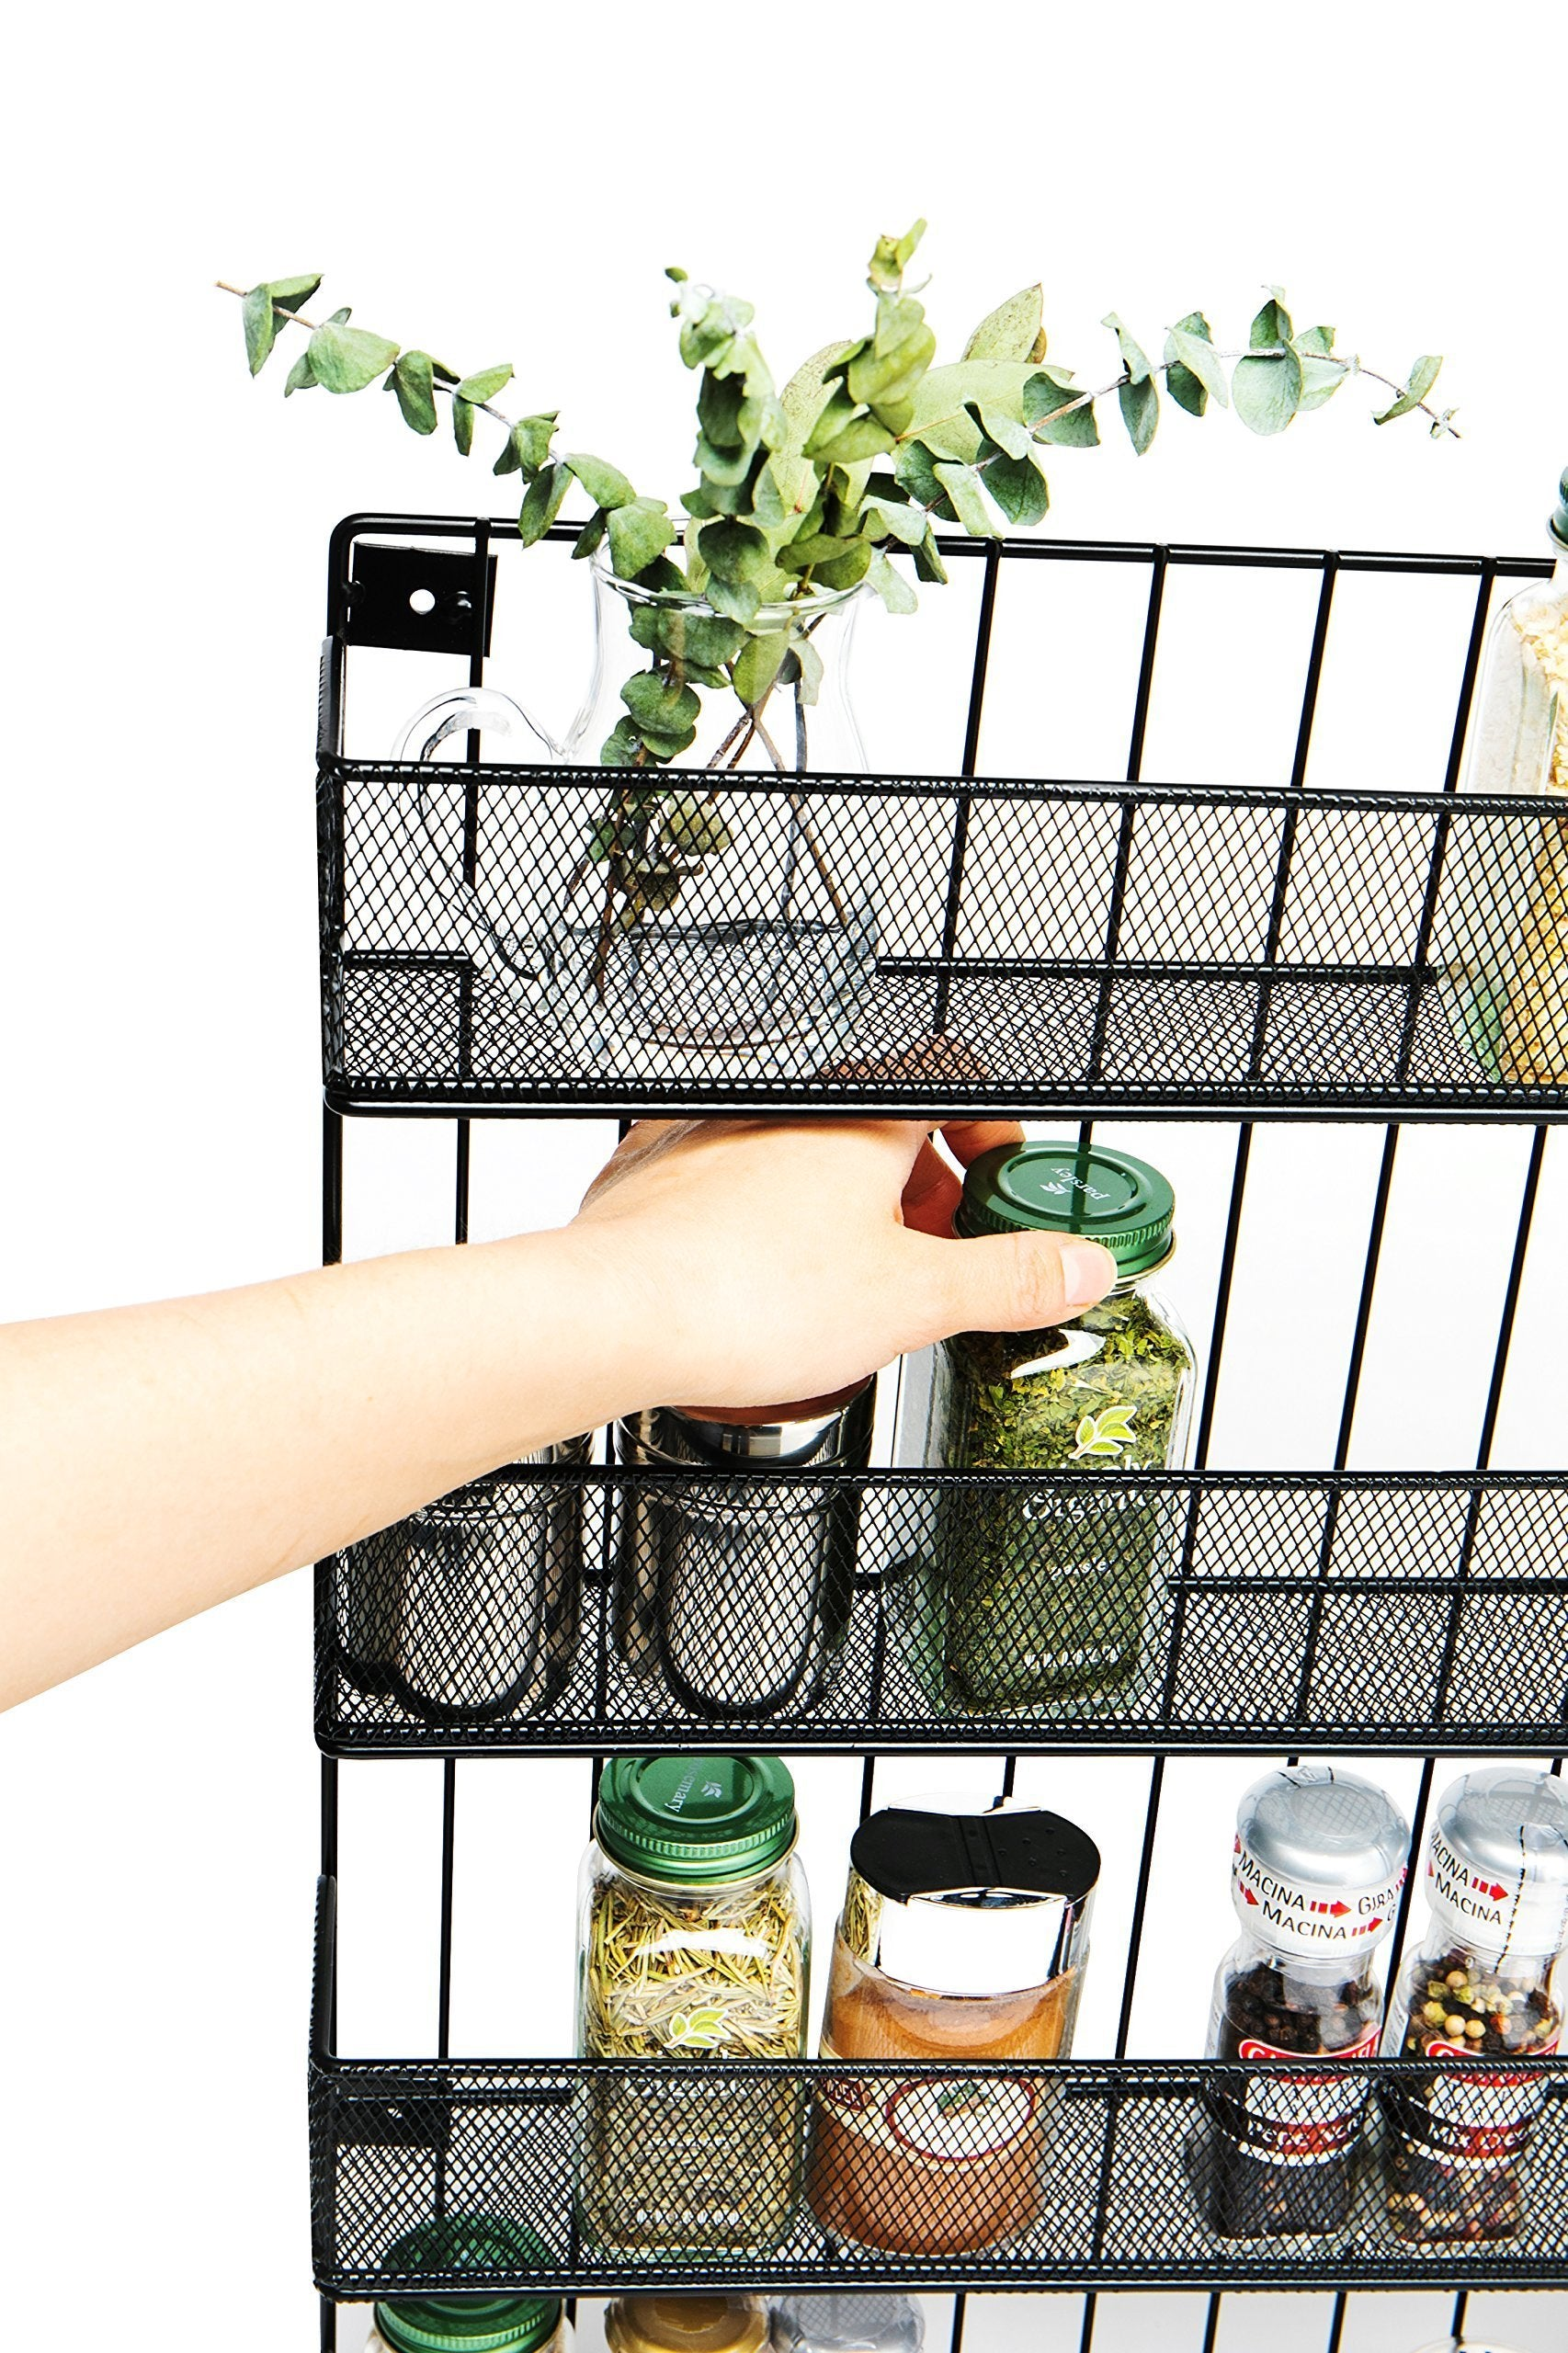 Kitchen jackcubedesign wall mount spice rack 4 tier kitchen countertop worktop display organizer spice bottles holder stand shelves17 6 x 2 8 x 20 8 inches mk418a